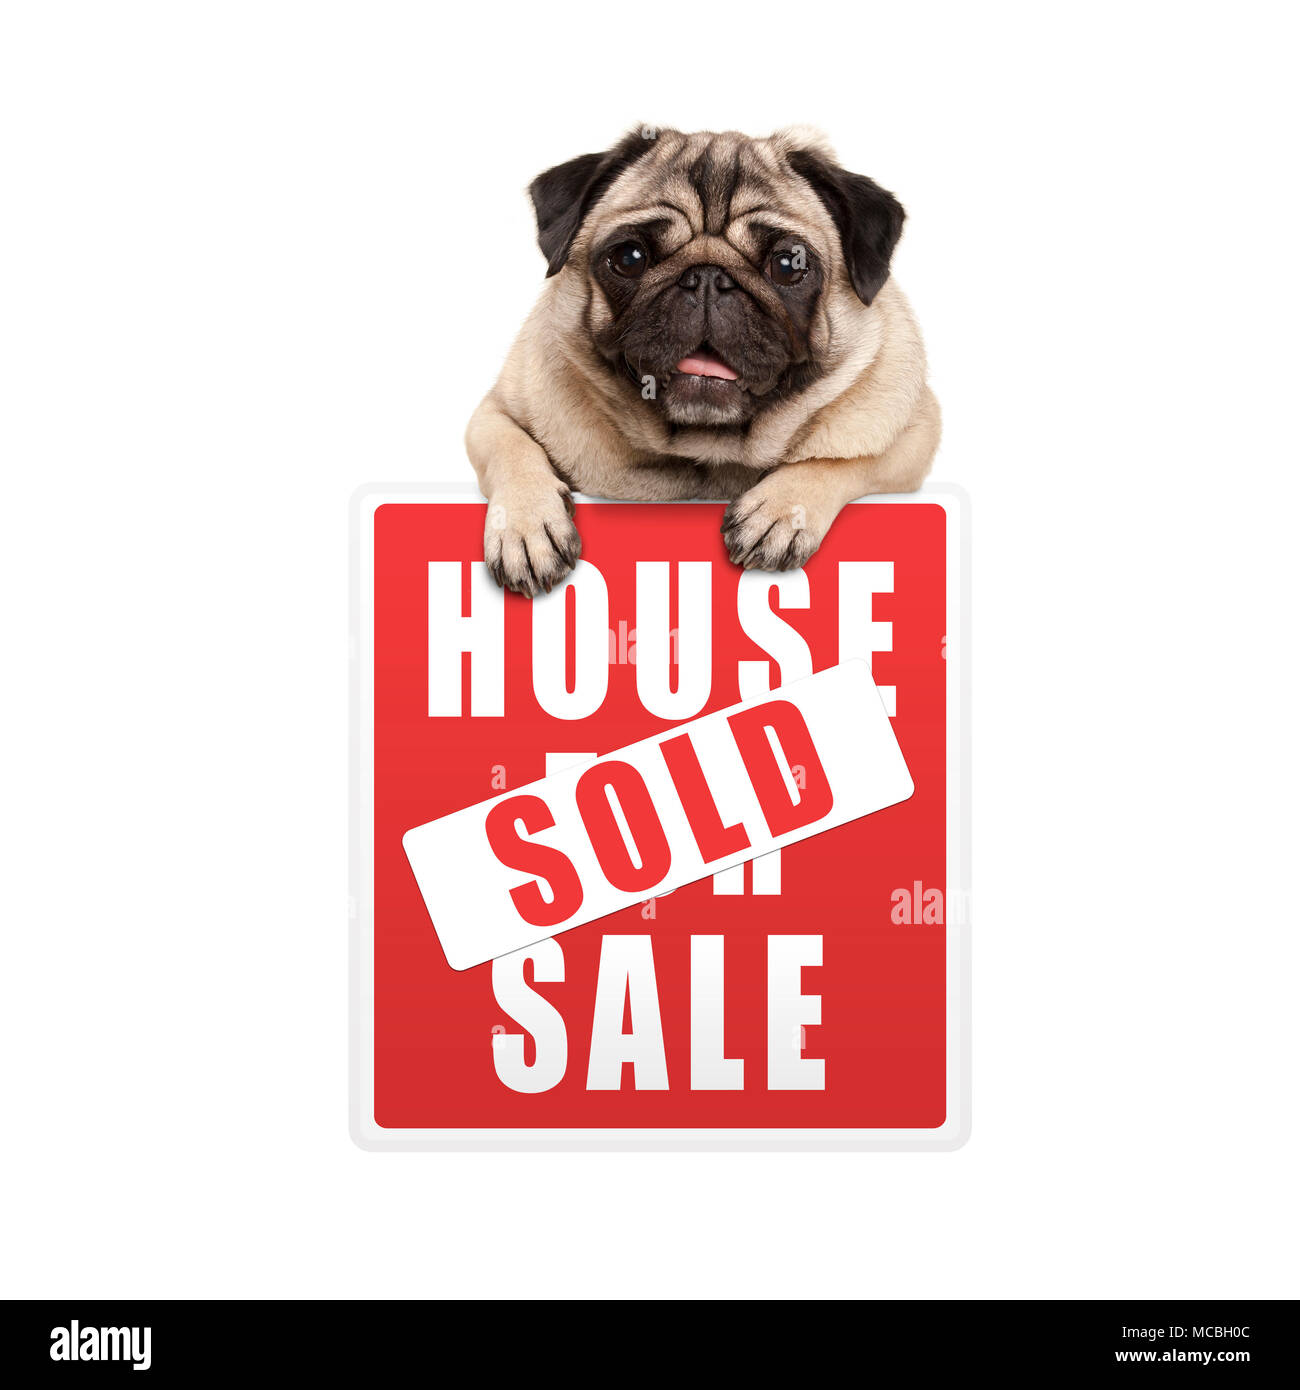 cute smiling pug puppy dog hanging with paws on red house sold sign, isolated on white background Stock Photo